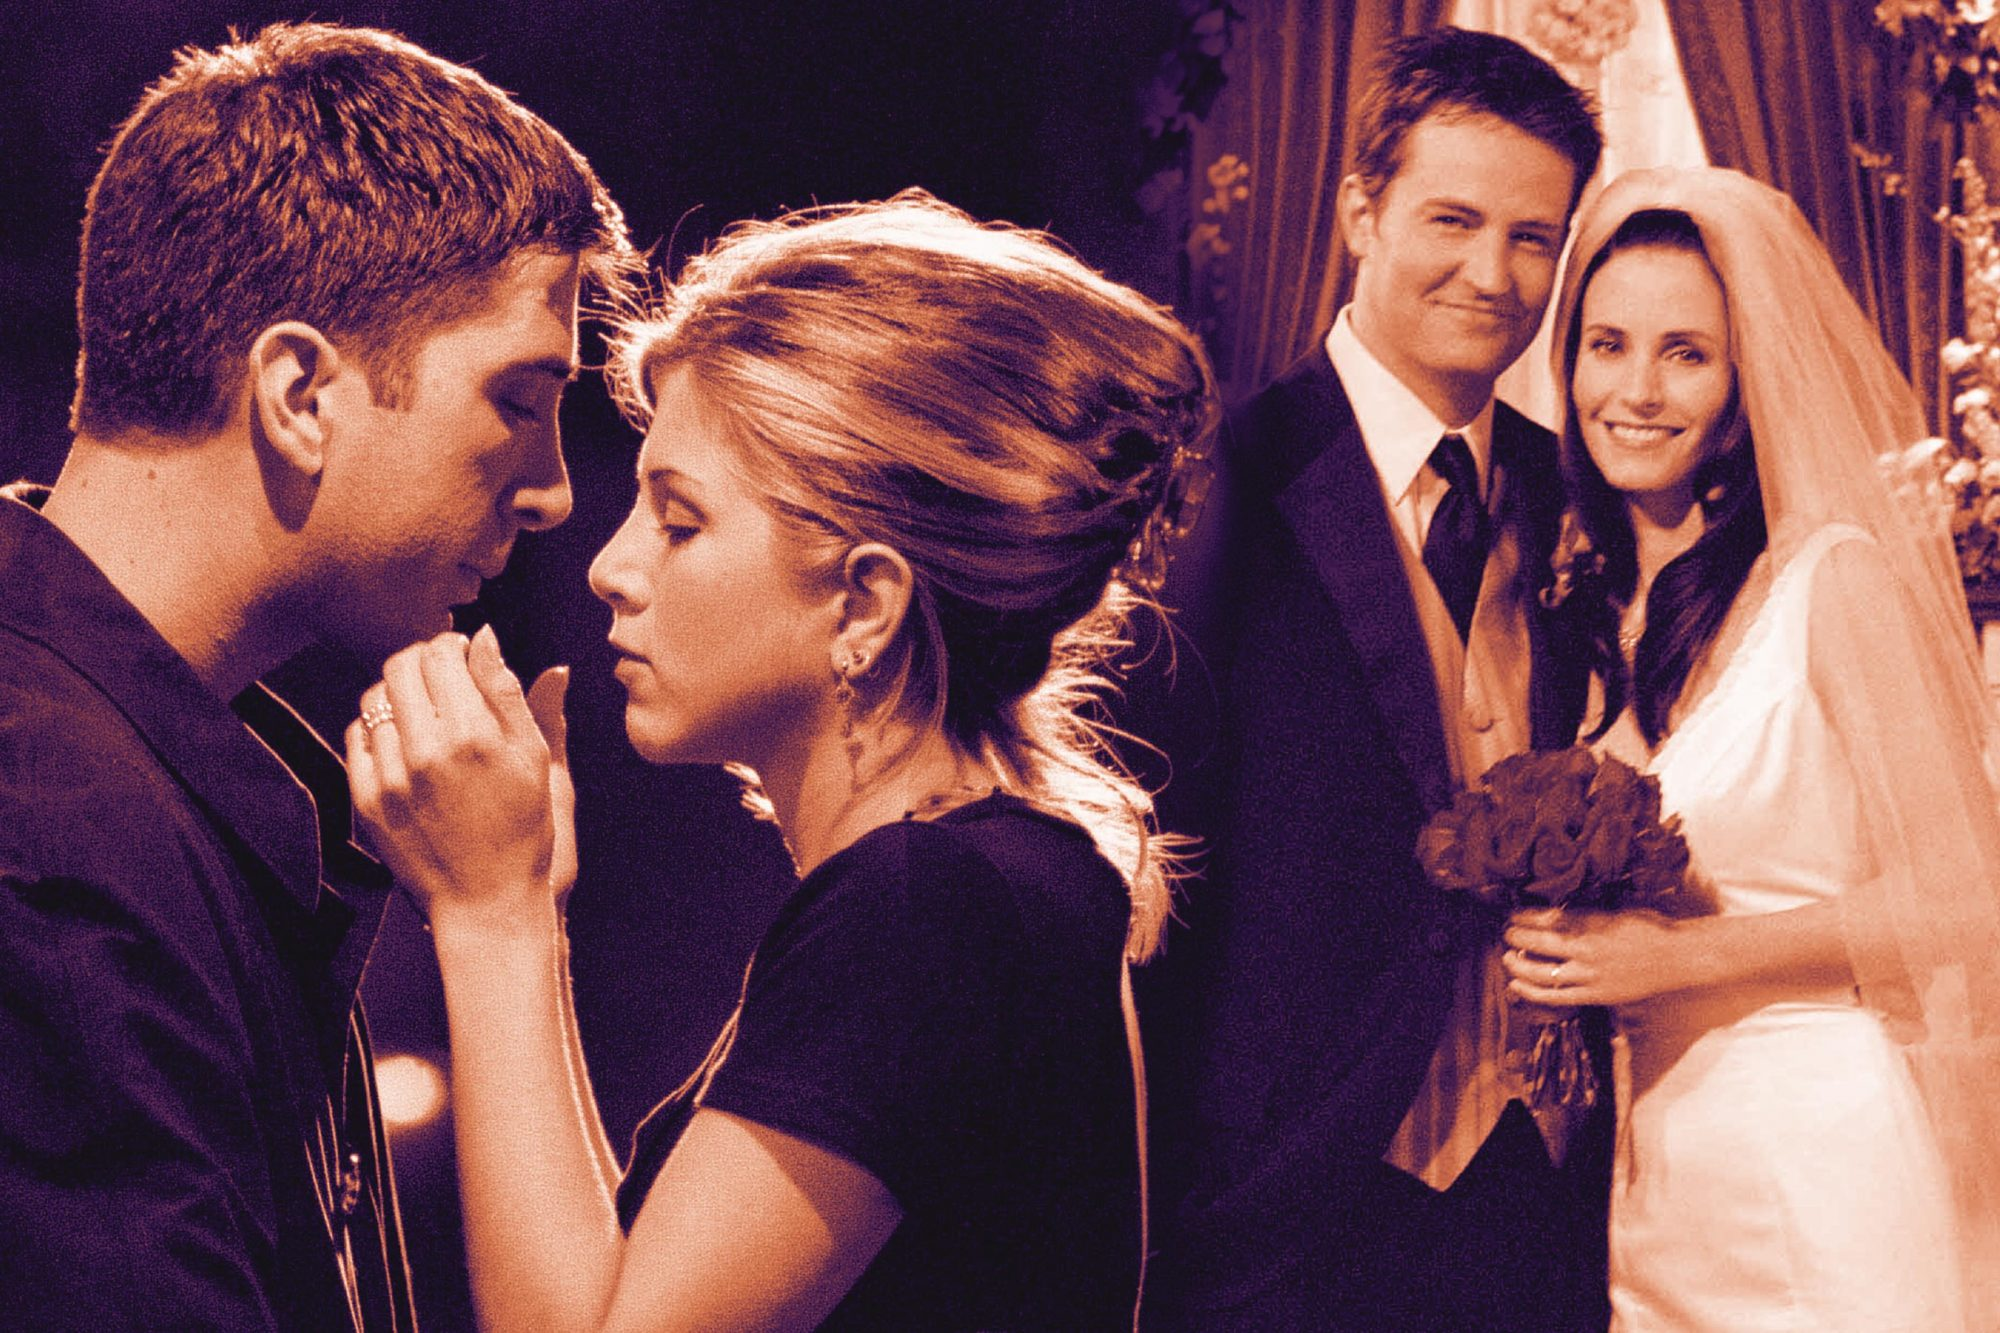 Friends Most Romantic Moments